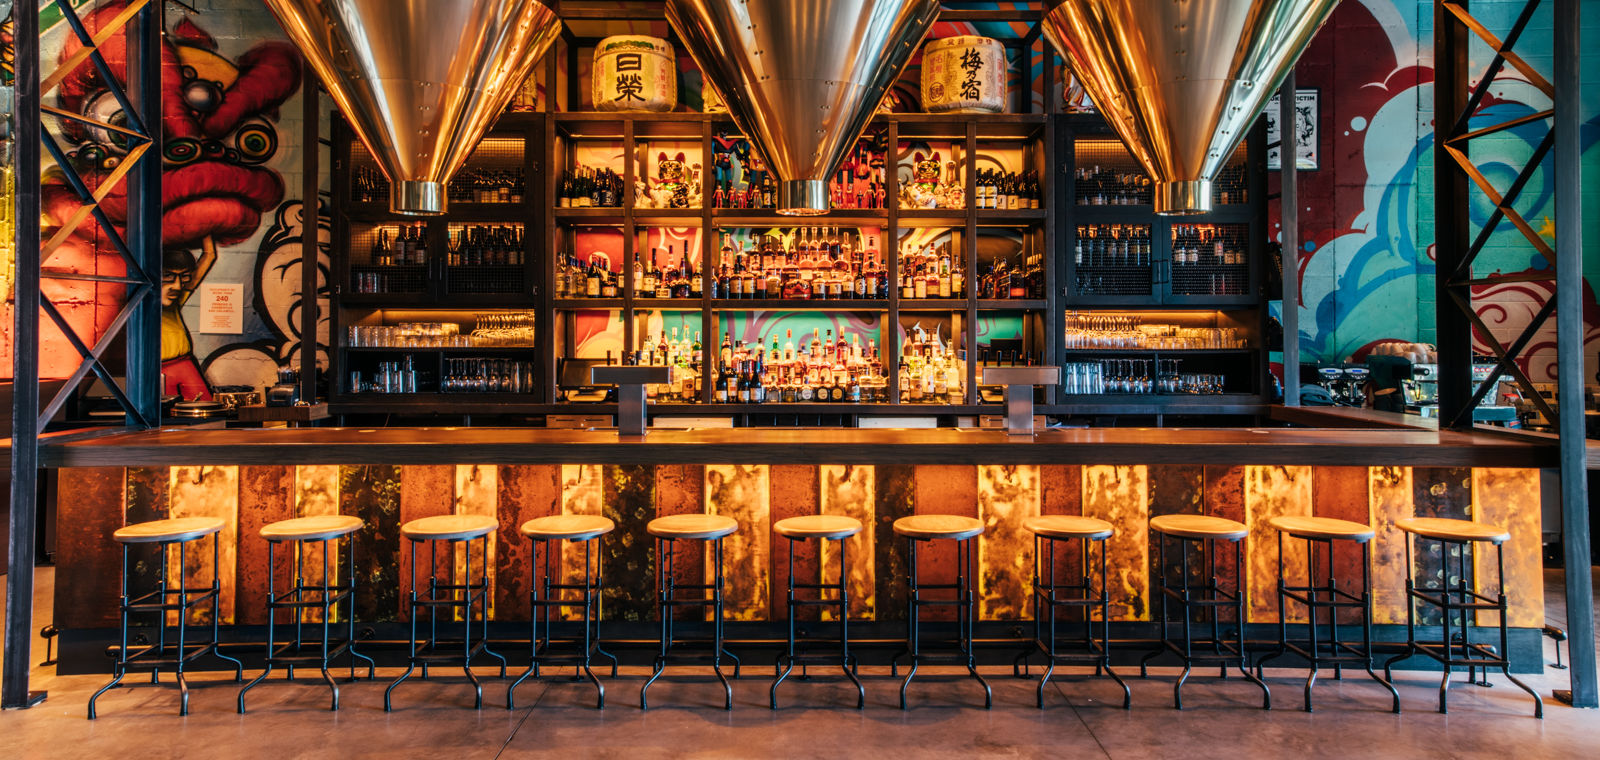 Rice-and-Gold-50-Bowery-Photography-All-Good-NYC-Space-5